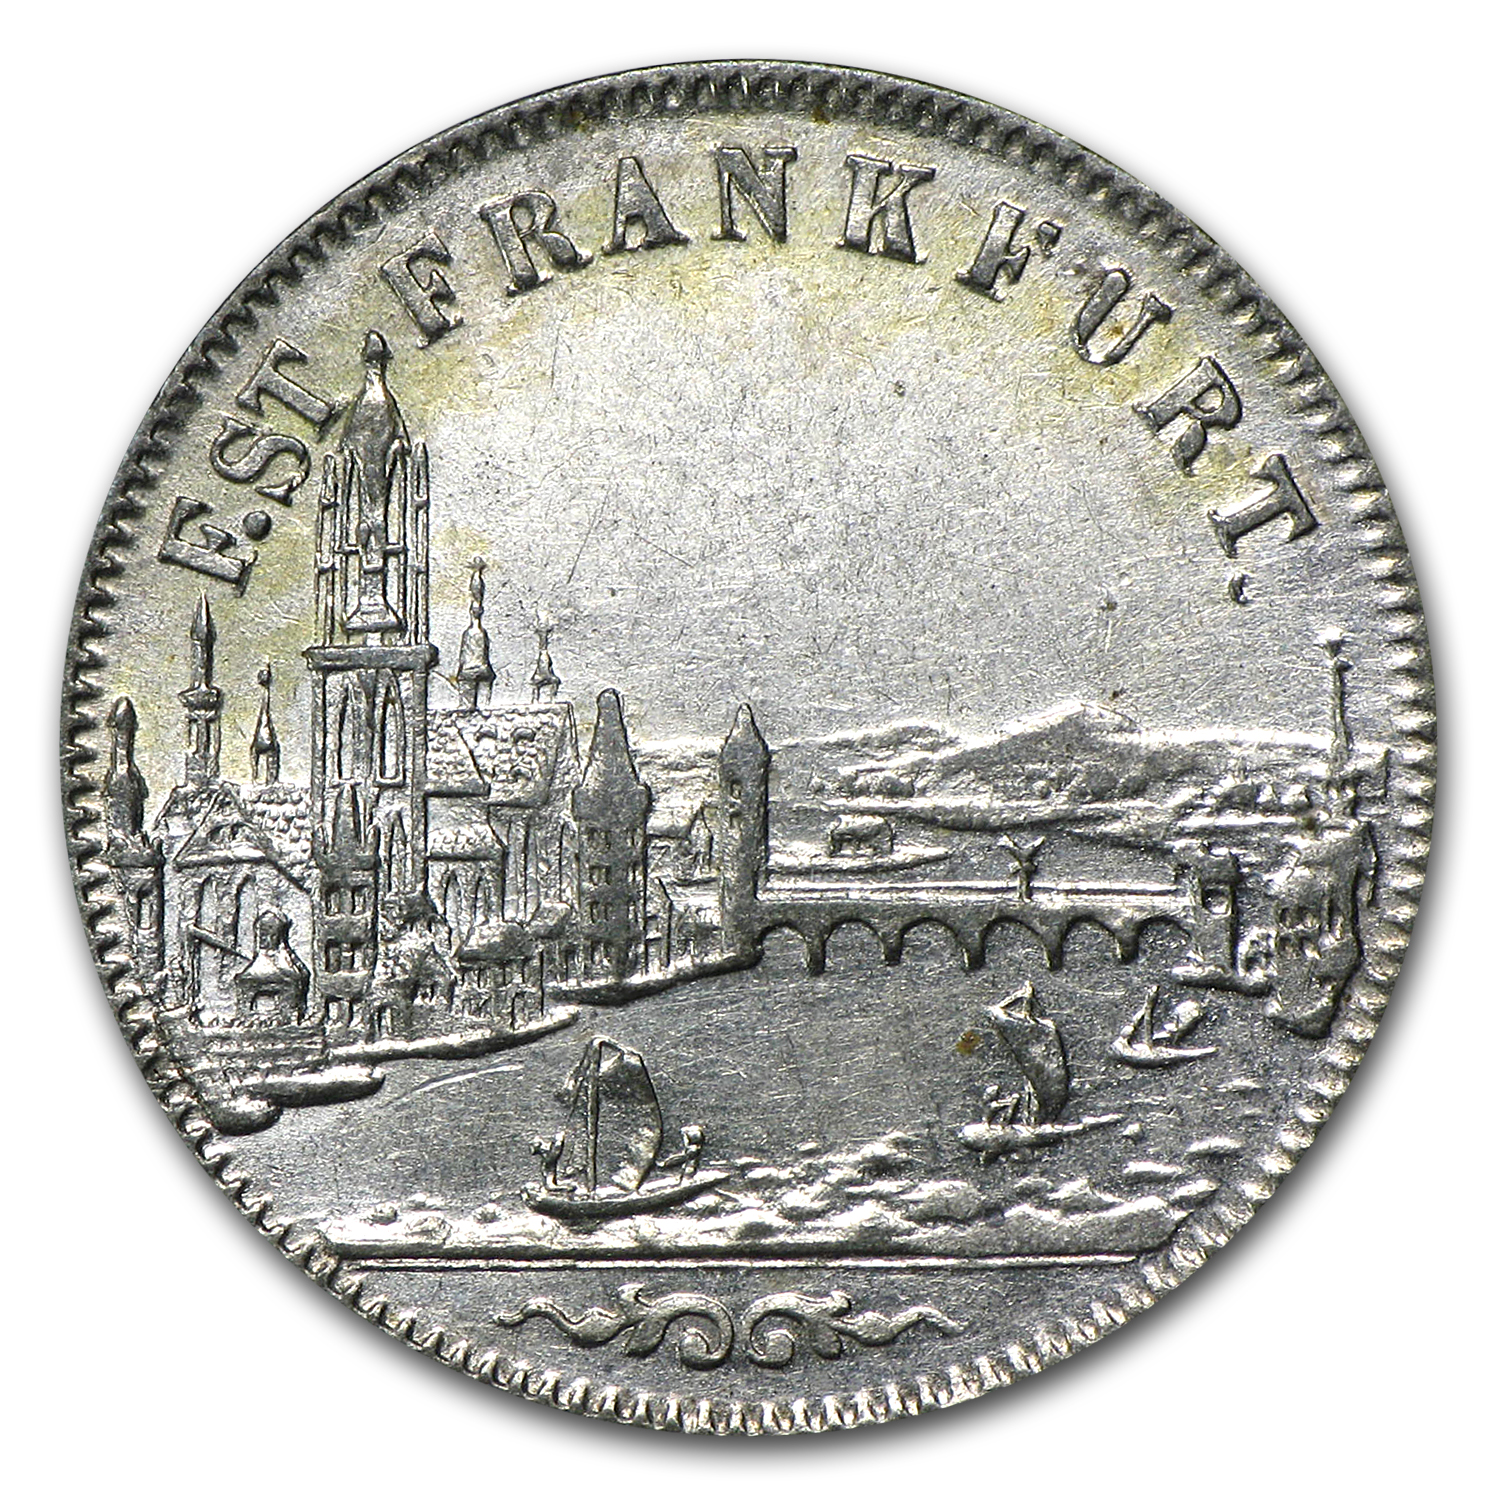 Frankfurt am Main 1853 6 Kreuzer Almost Uncirculated